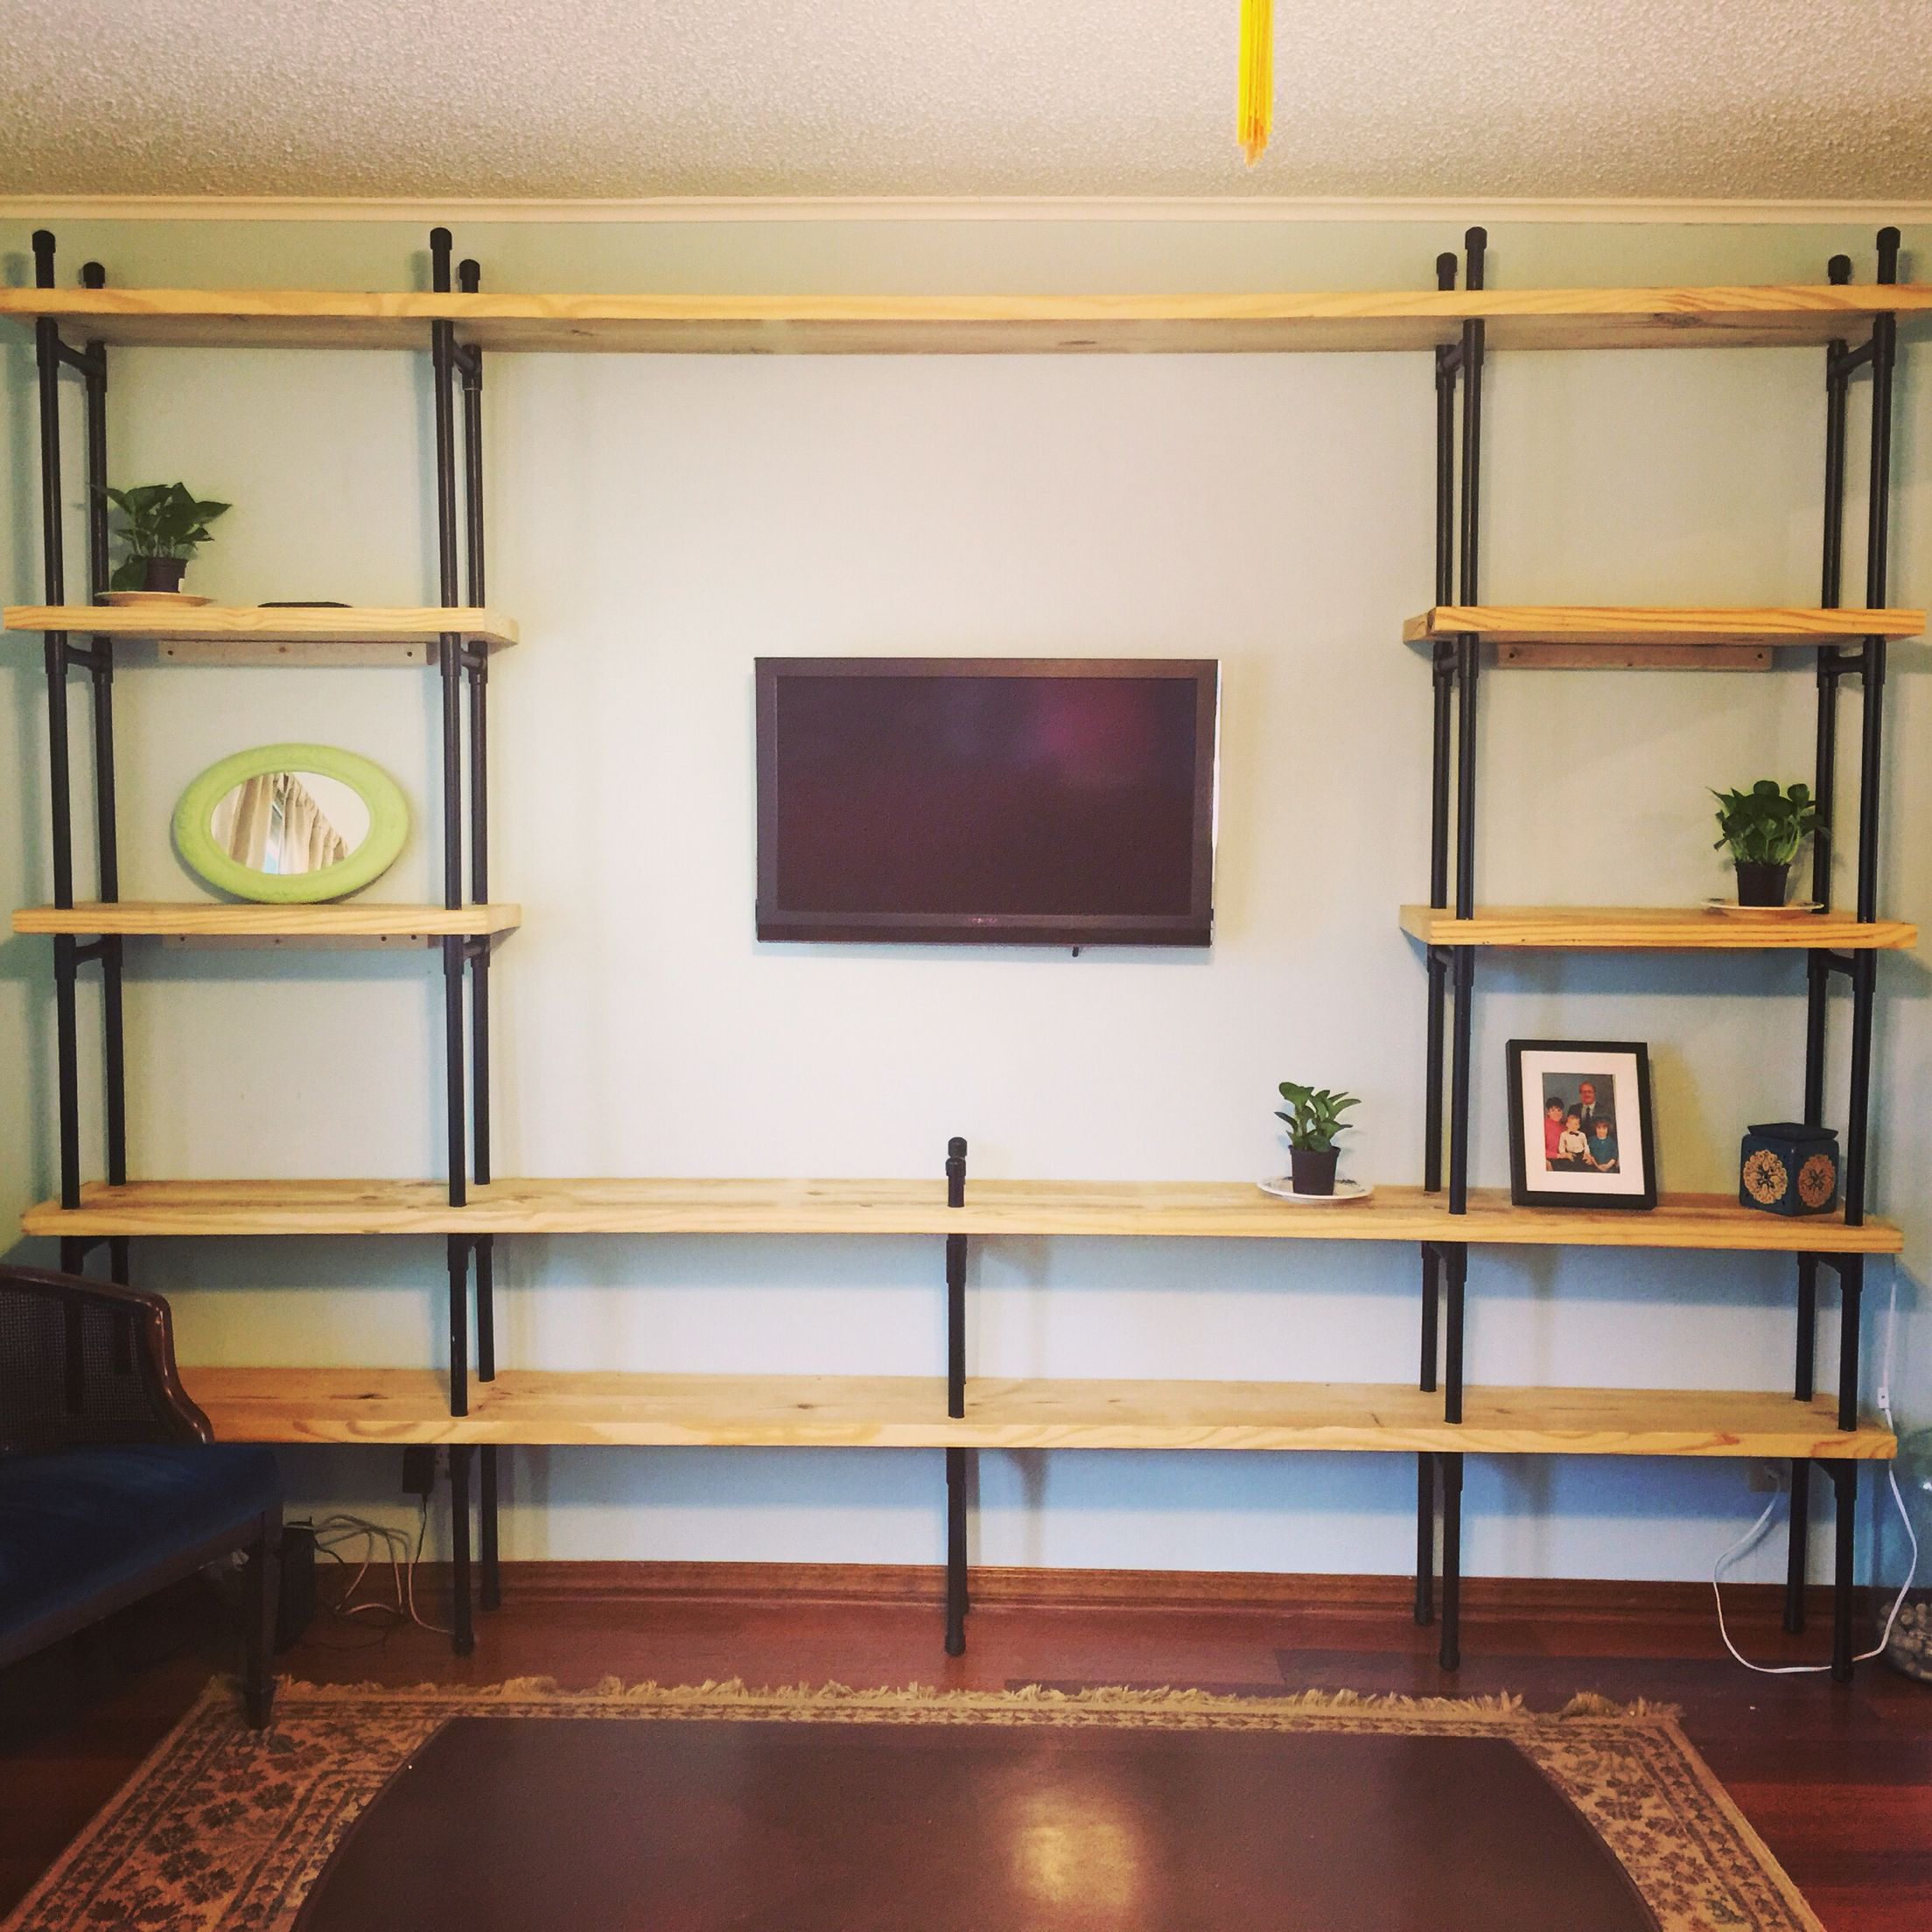 Completed Pvc Pipe Shelves More